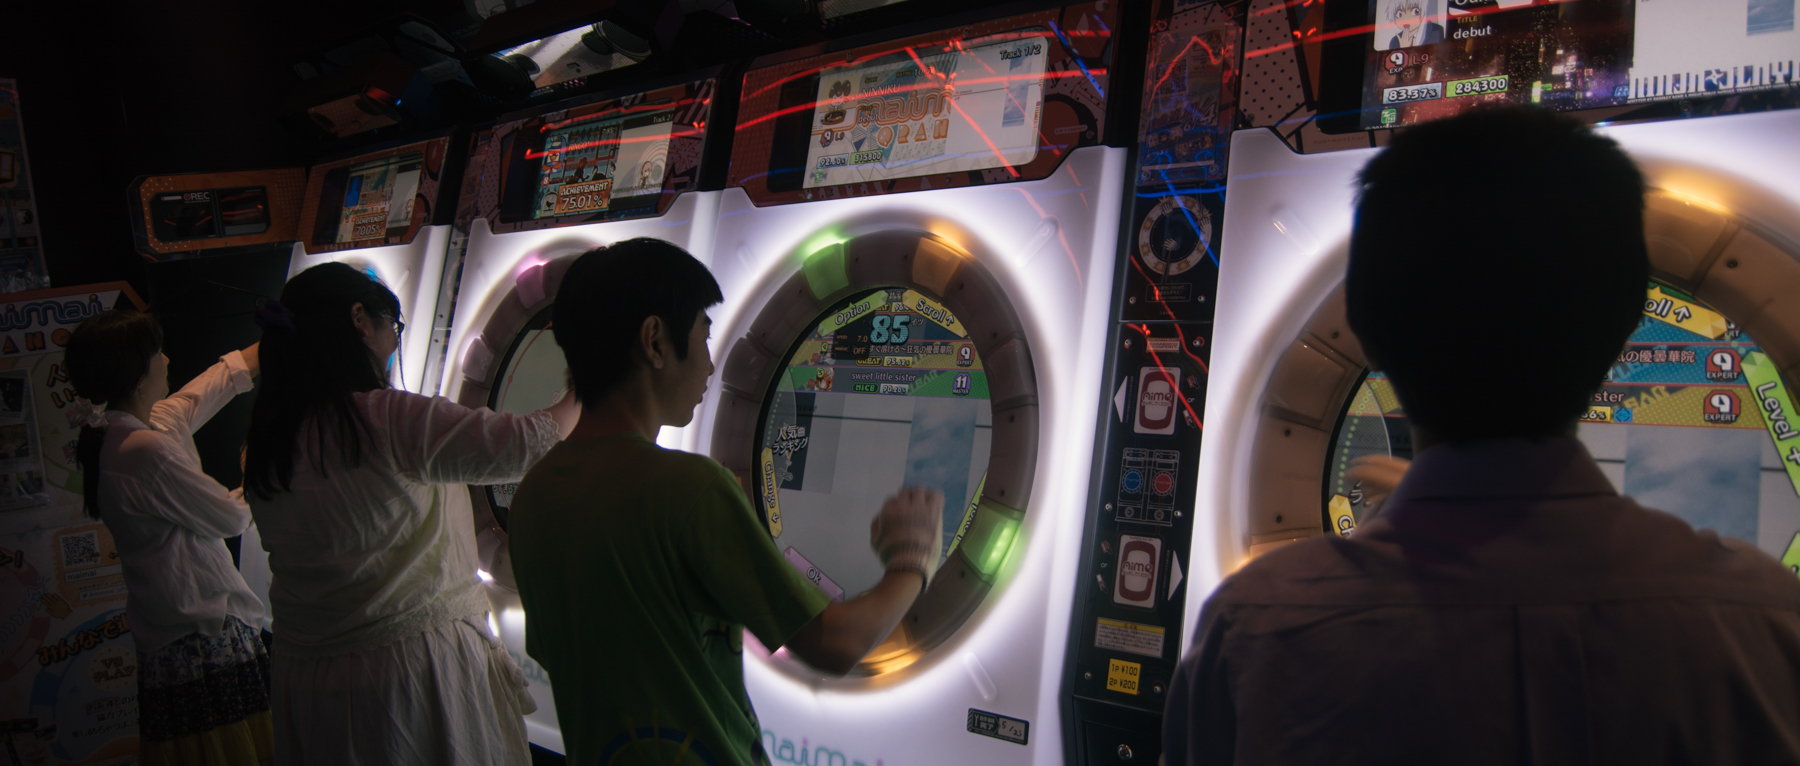 People playing video games at a 2015 event in Tokyo